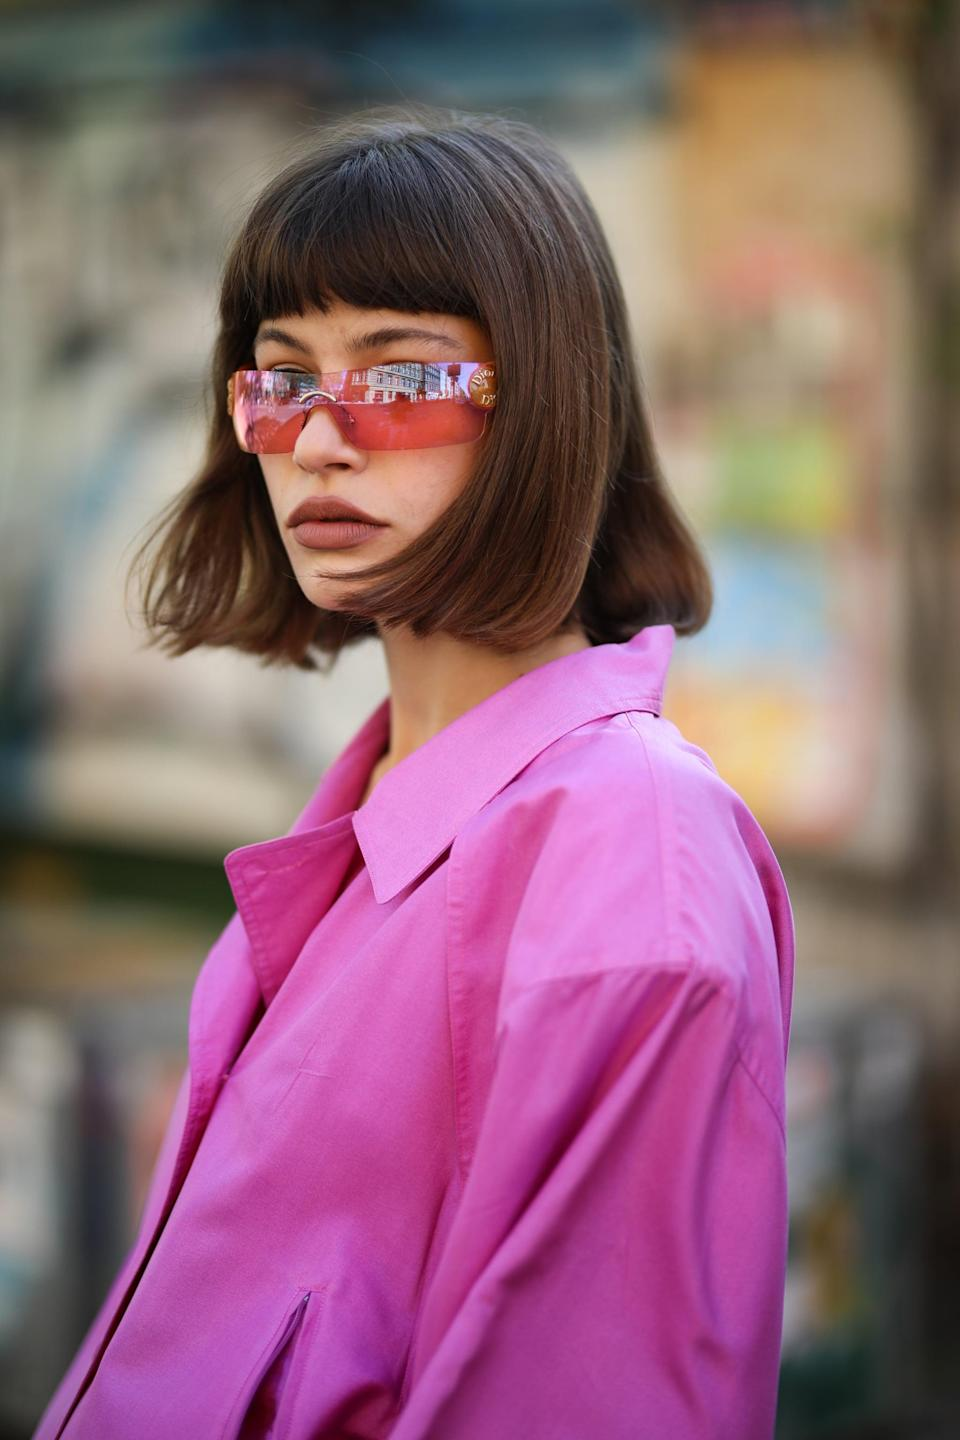 """<p>Blunt bangs are typically cut straight across from the outside corner of each eye. """"You can also make [fringe] heavy or soft,"""" <a href=""""https://johnbarrett.com/"""" class=""""link rapid-noclick-resp"""" rel=""""nofollow noopener"""" target=""""_blank"""" data-ylk=""""slk:John Barrett"""">John Barrett</a> stylist Dhiran Mistry explained. """"You can make it softer by cutting more into it and using a smaller section, so it's less hair falling in the face.""""</p> <p>Because the horizontal line with these bangs tends to span the entire forehead, double check with your stylist that the cut will accentuate - not shorten - your face shape.</p>"""